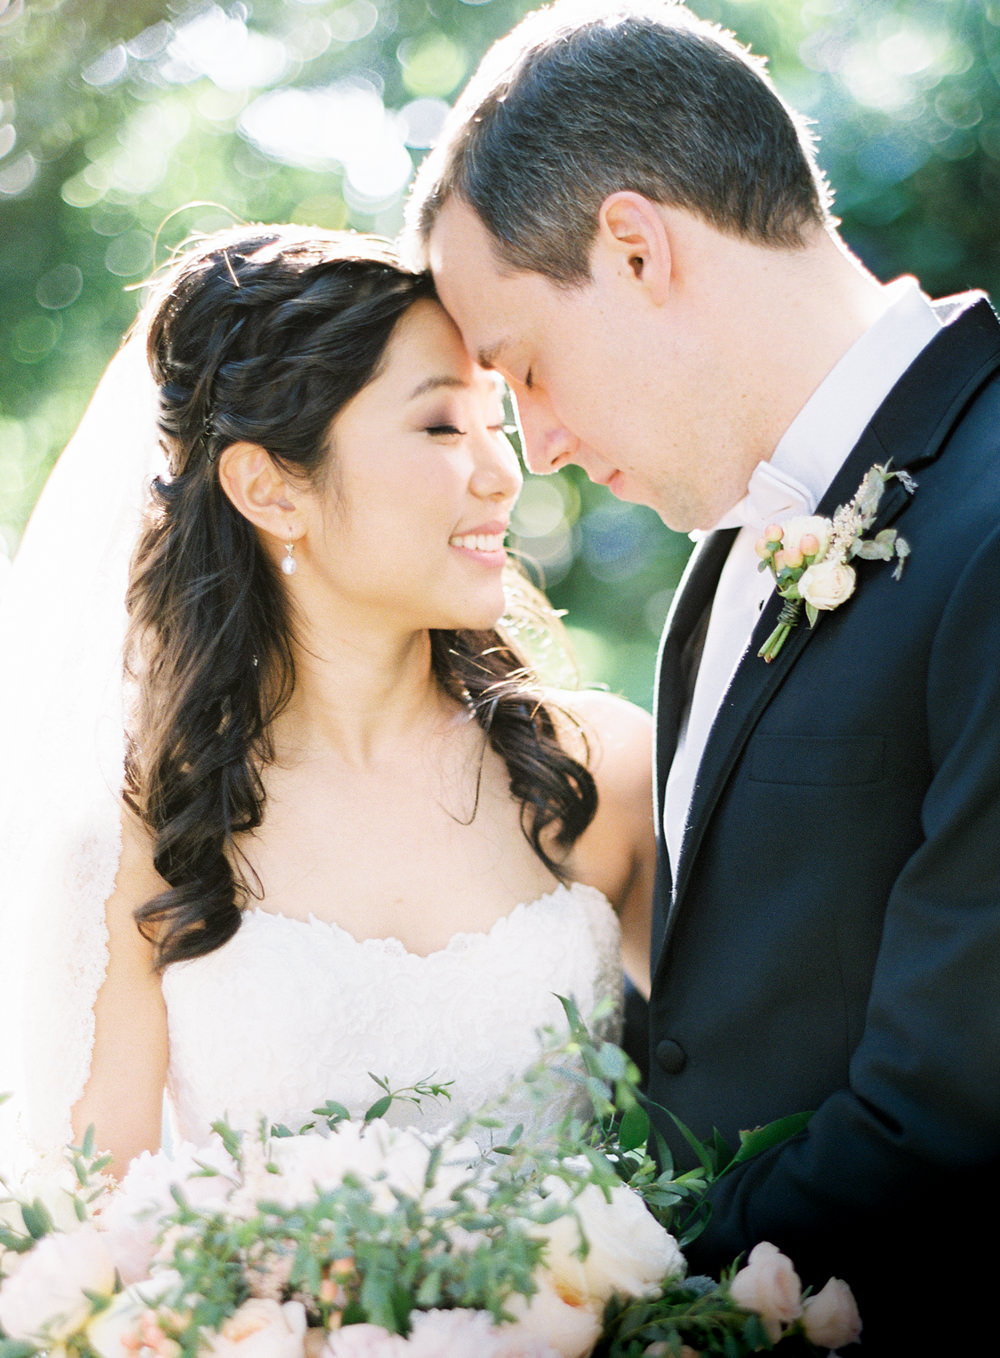 Romantic Garden Wedding in California | Style Me Pretty | Green Gables Estate | Classic Romantic bride and groom | blush pink green bridal bouquet florals | Southern California Film photographer | Whiskers and Willow Photography